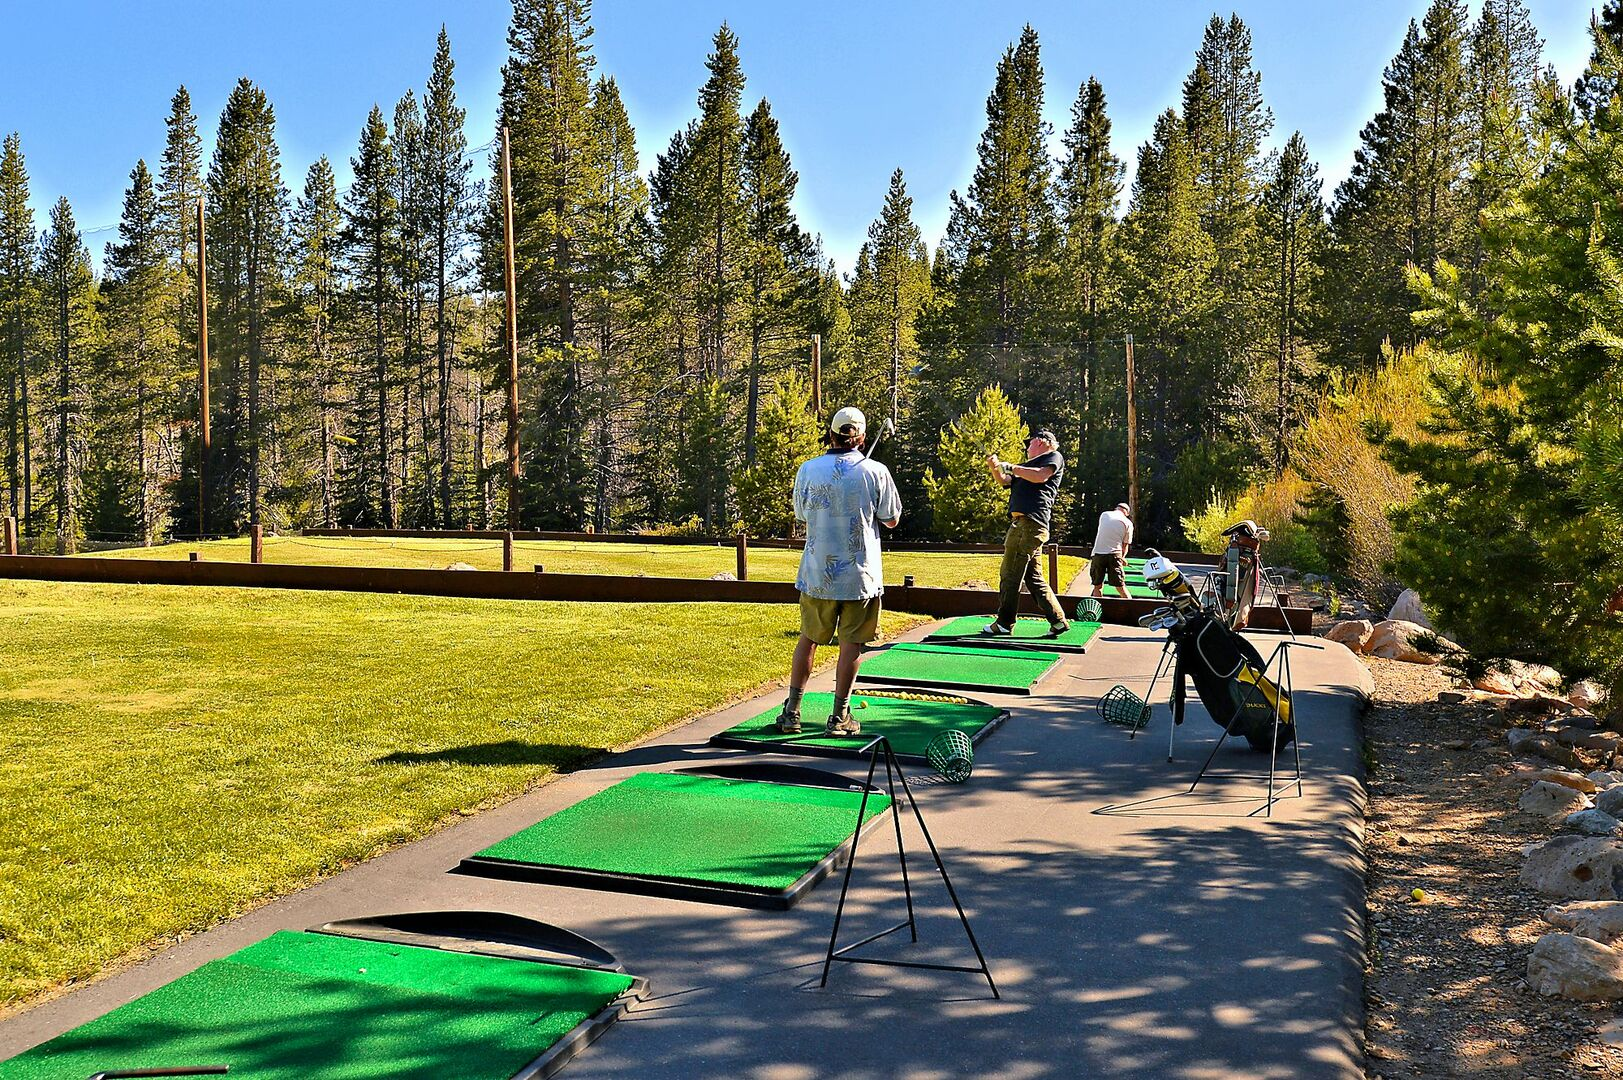 Driving Range at Trout Creek Recreation Center